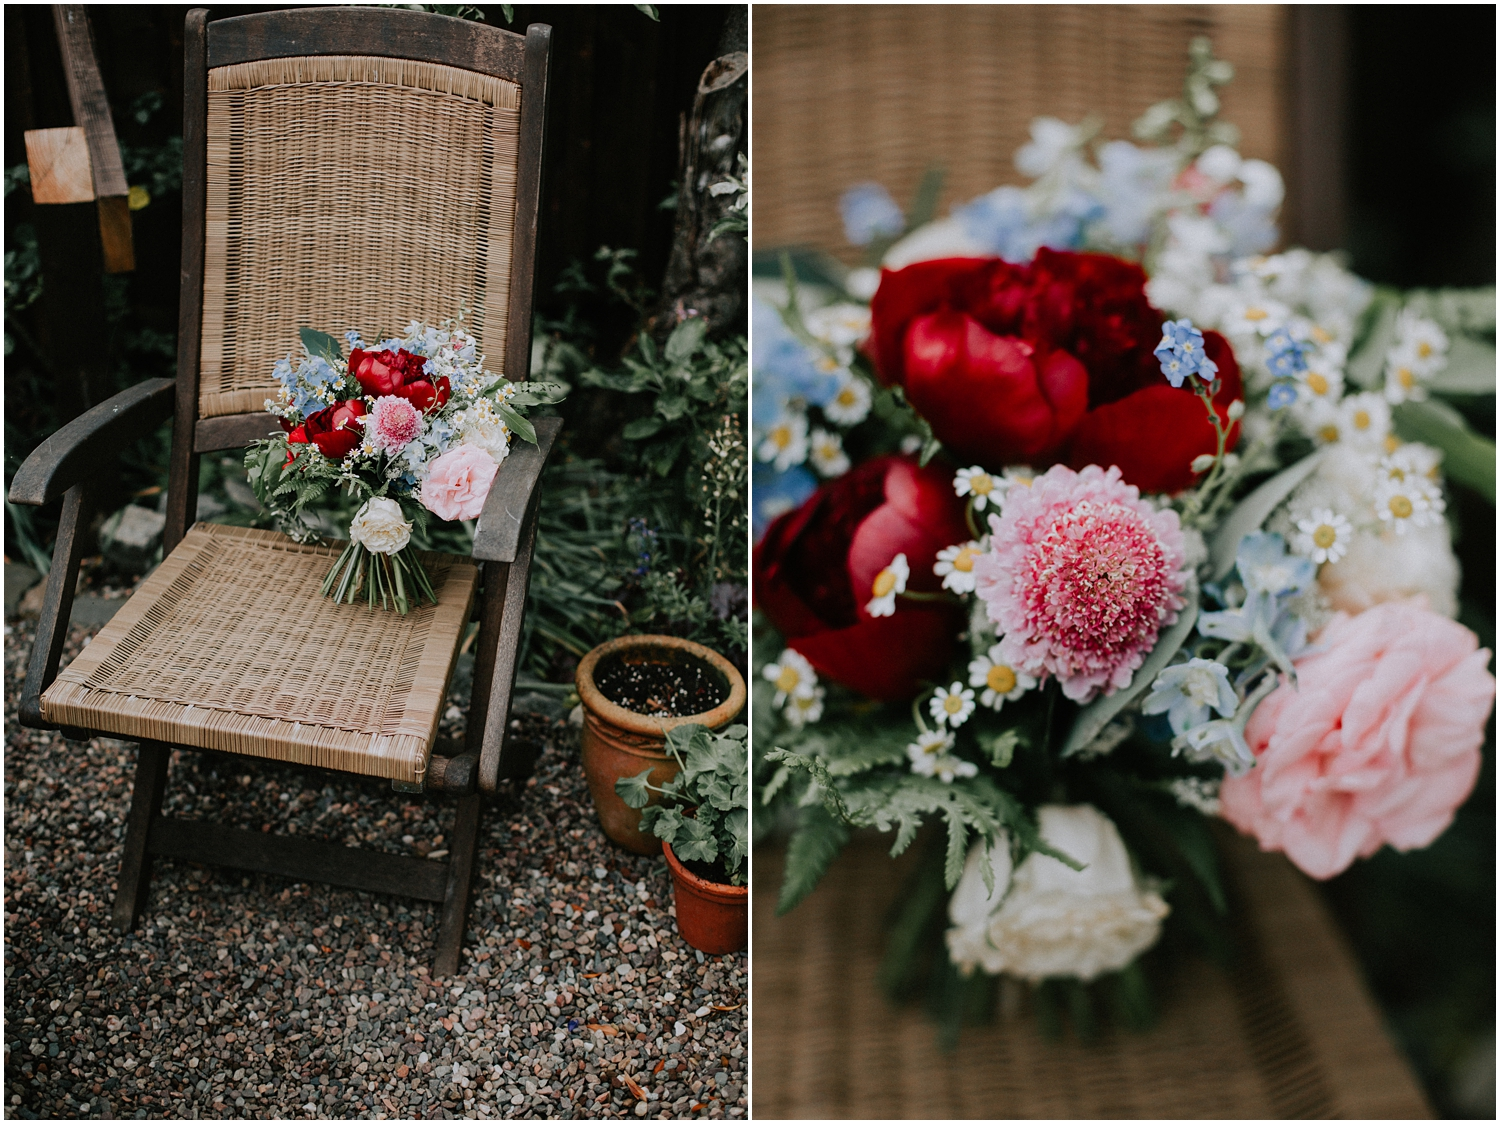 Boho style wedding flowers by The Floral Design Boutique